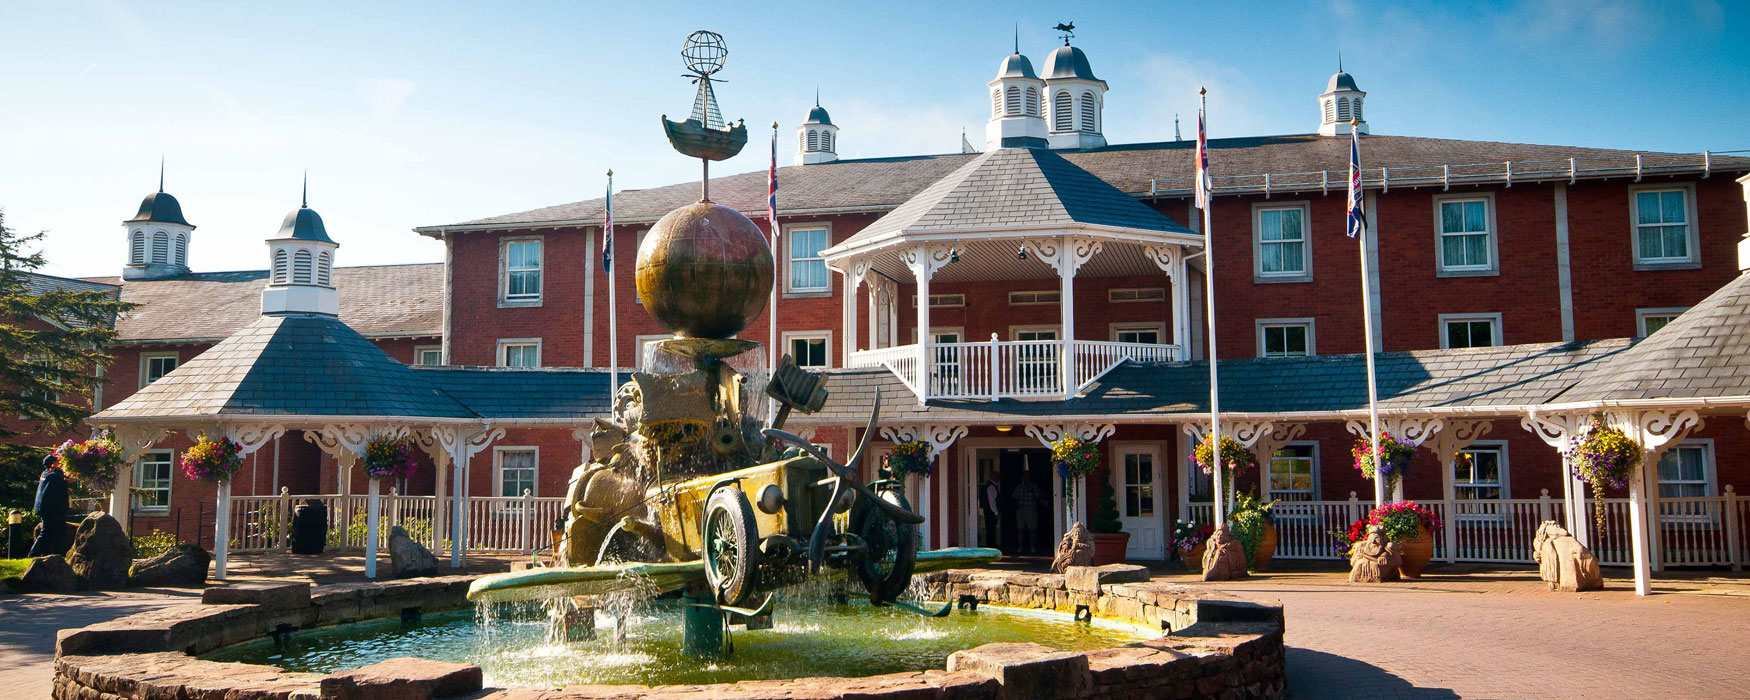 stay at the alton towers resort